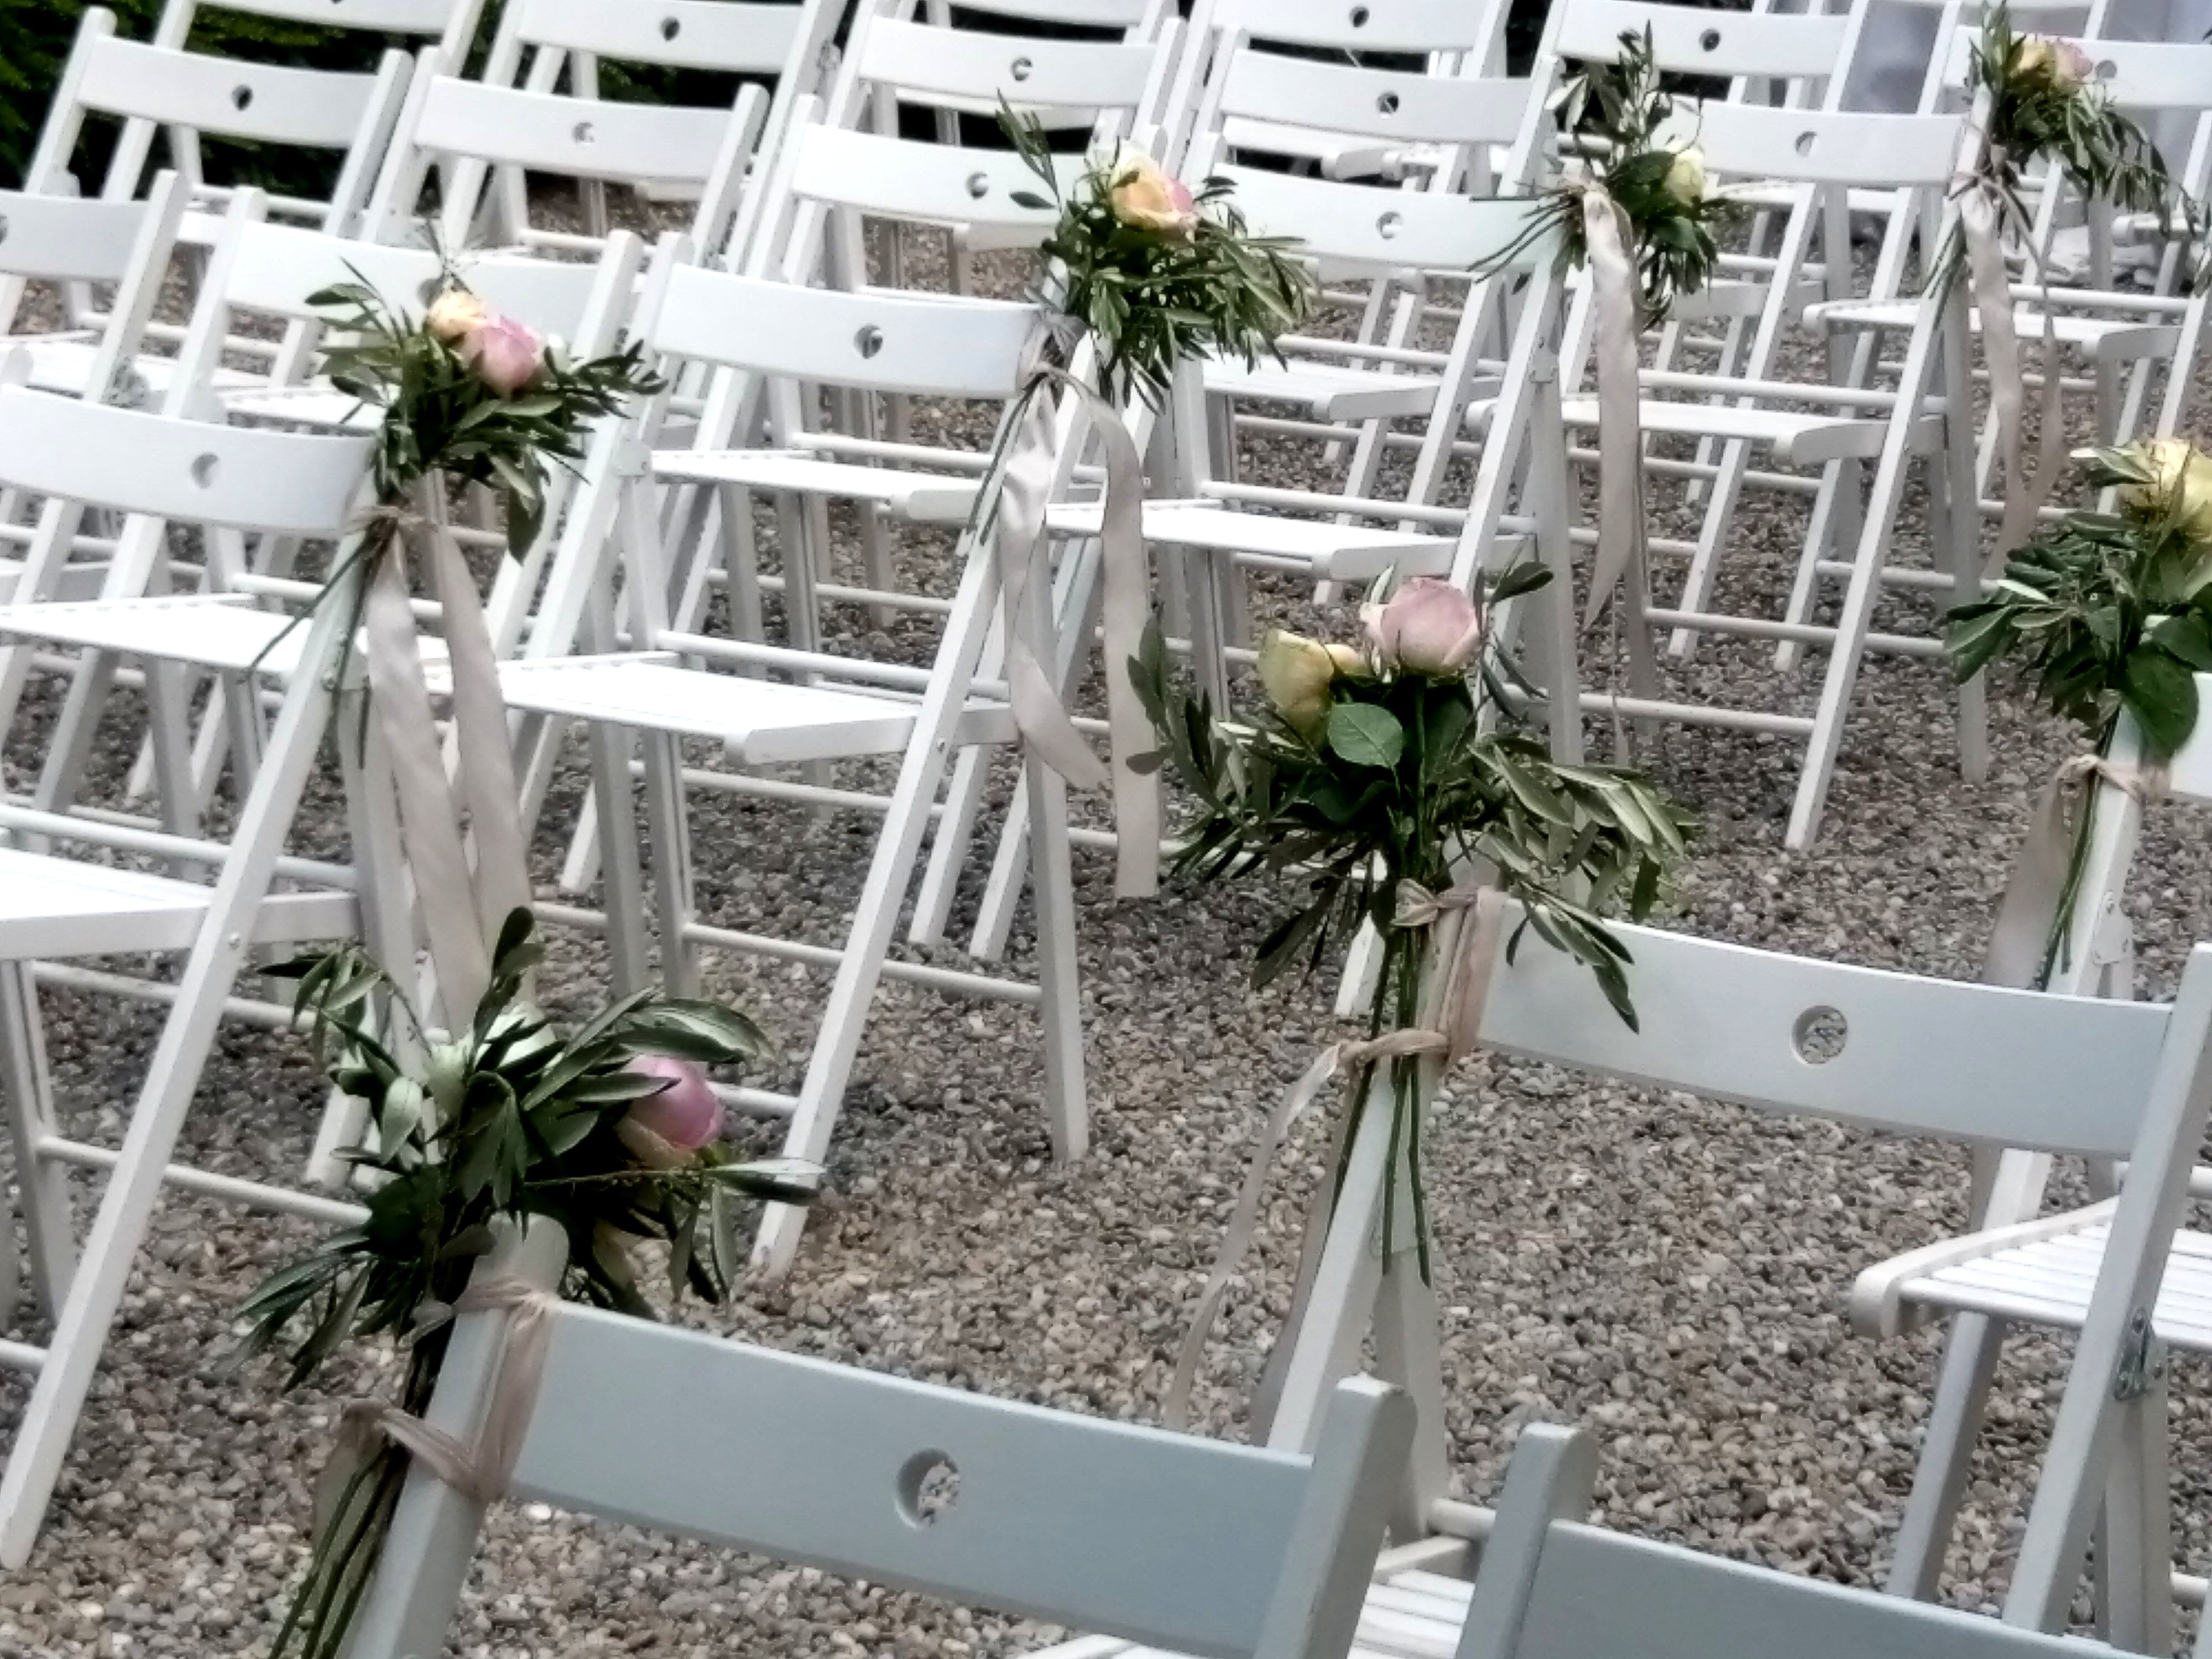 Free stock photo of chairs, flower bouquets